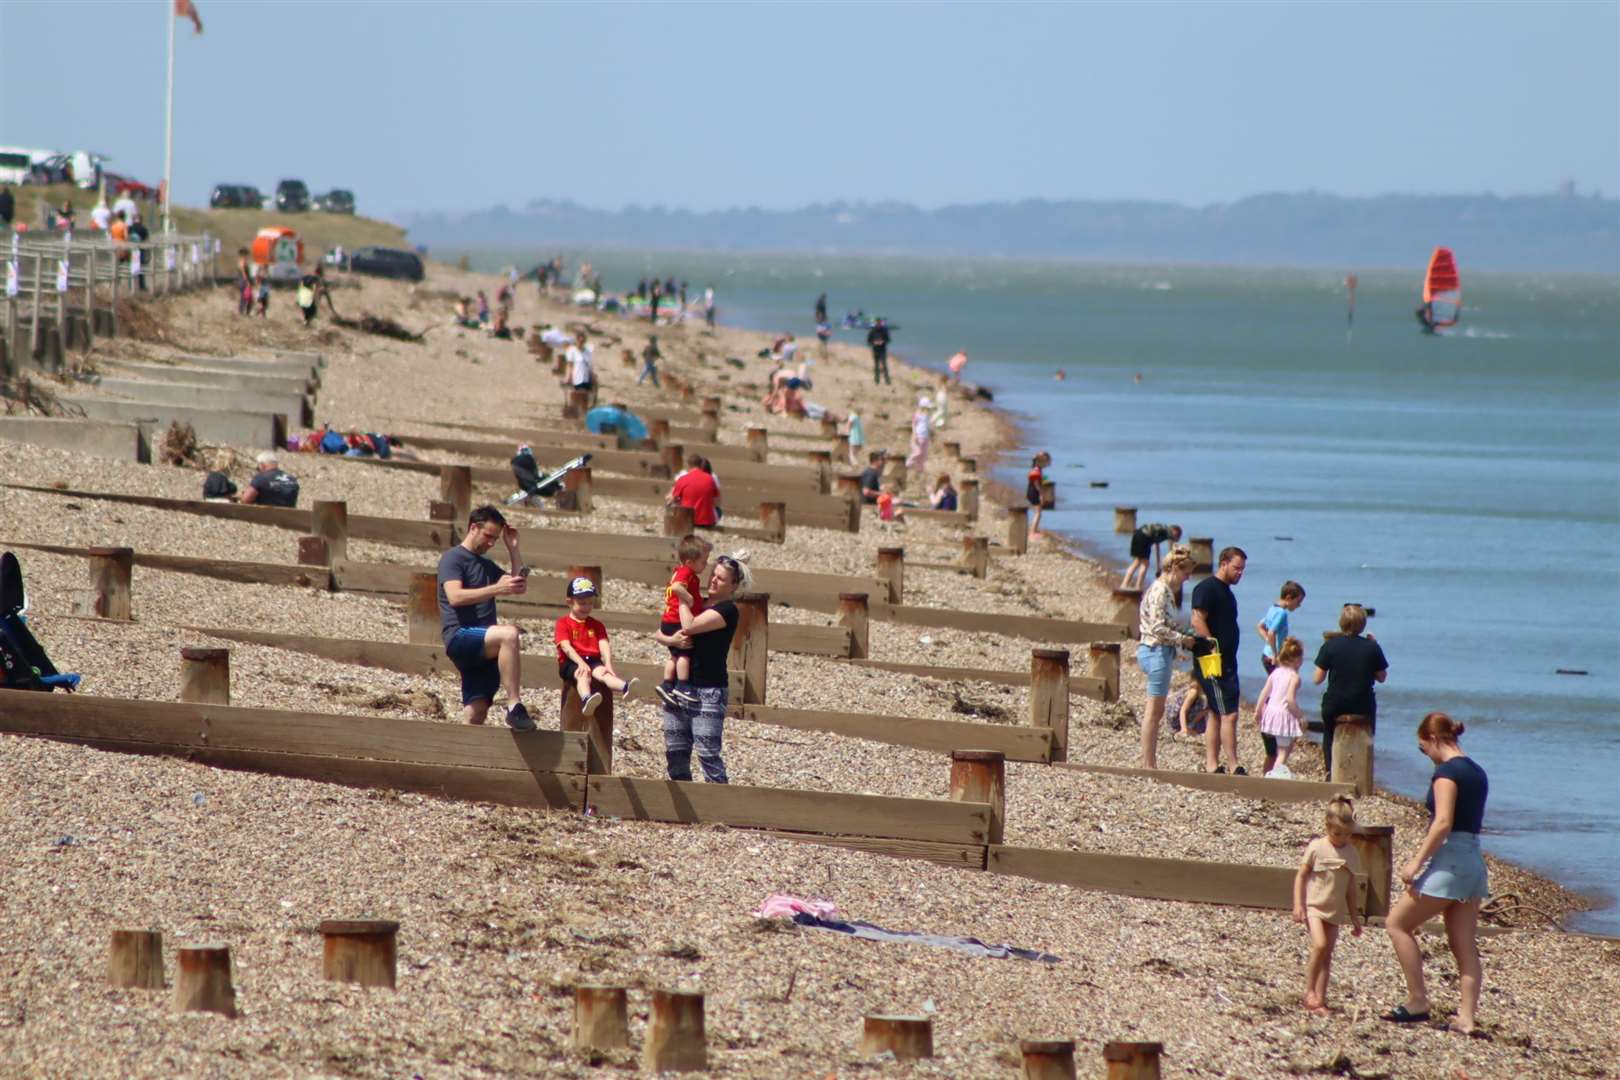 People on the beach at The Leas, Minster, Sheppey - but keeping social distancing during the coronavirus lockdown